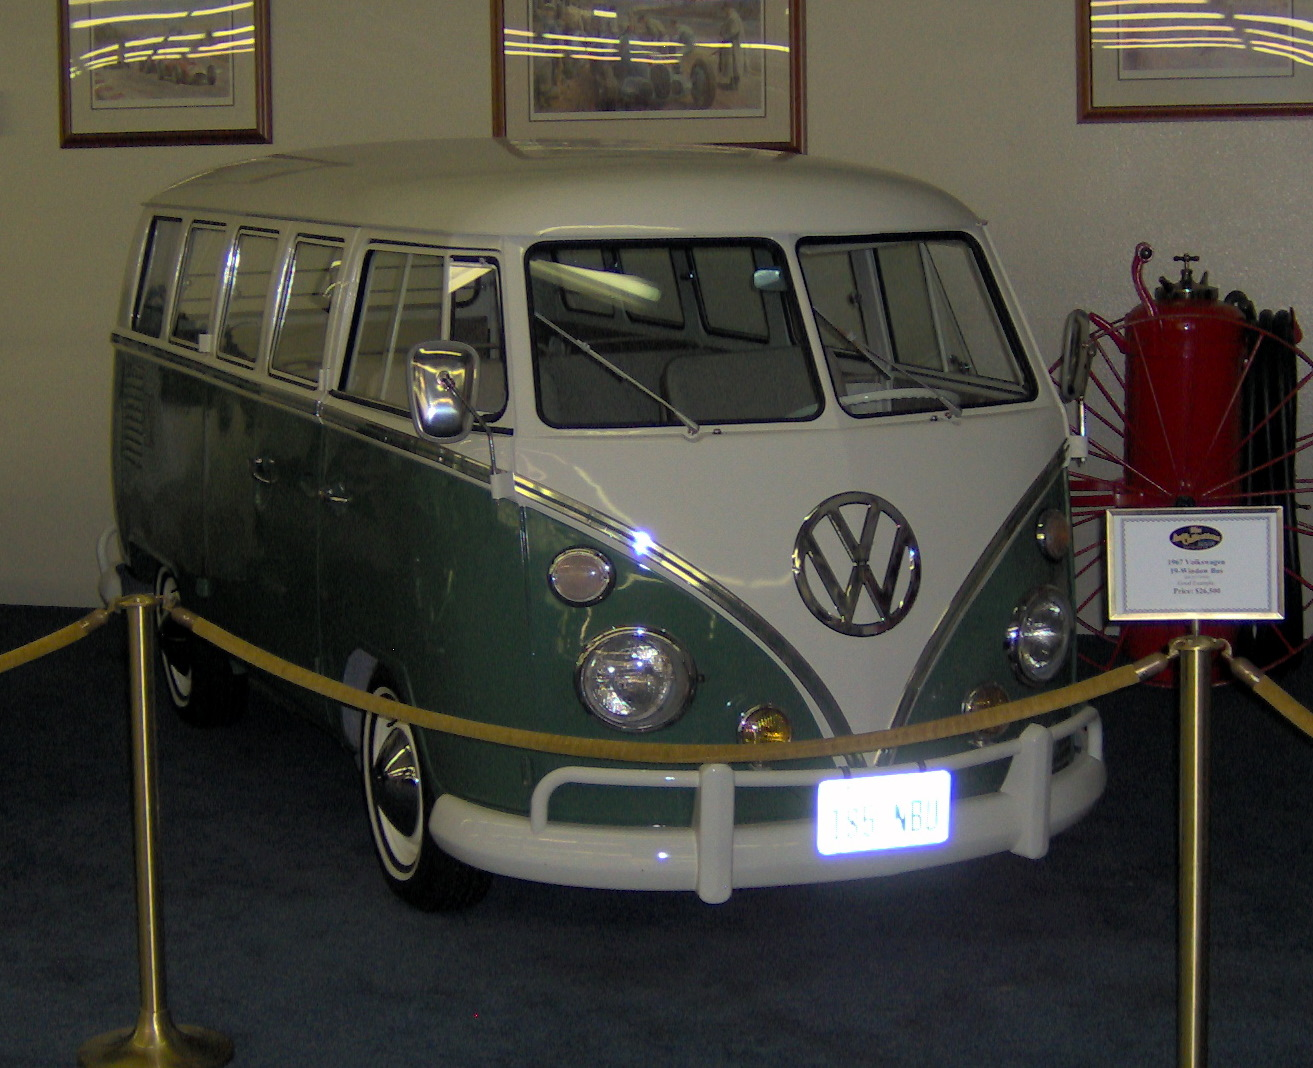 Volkswagen buss photo - 2